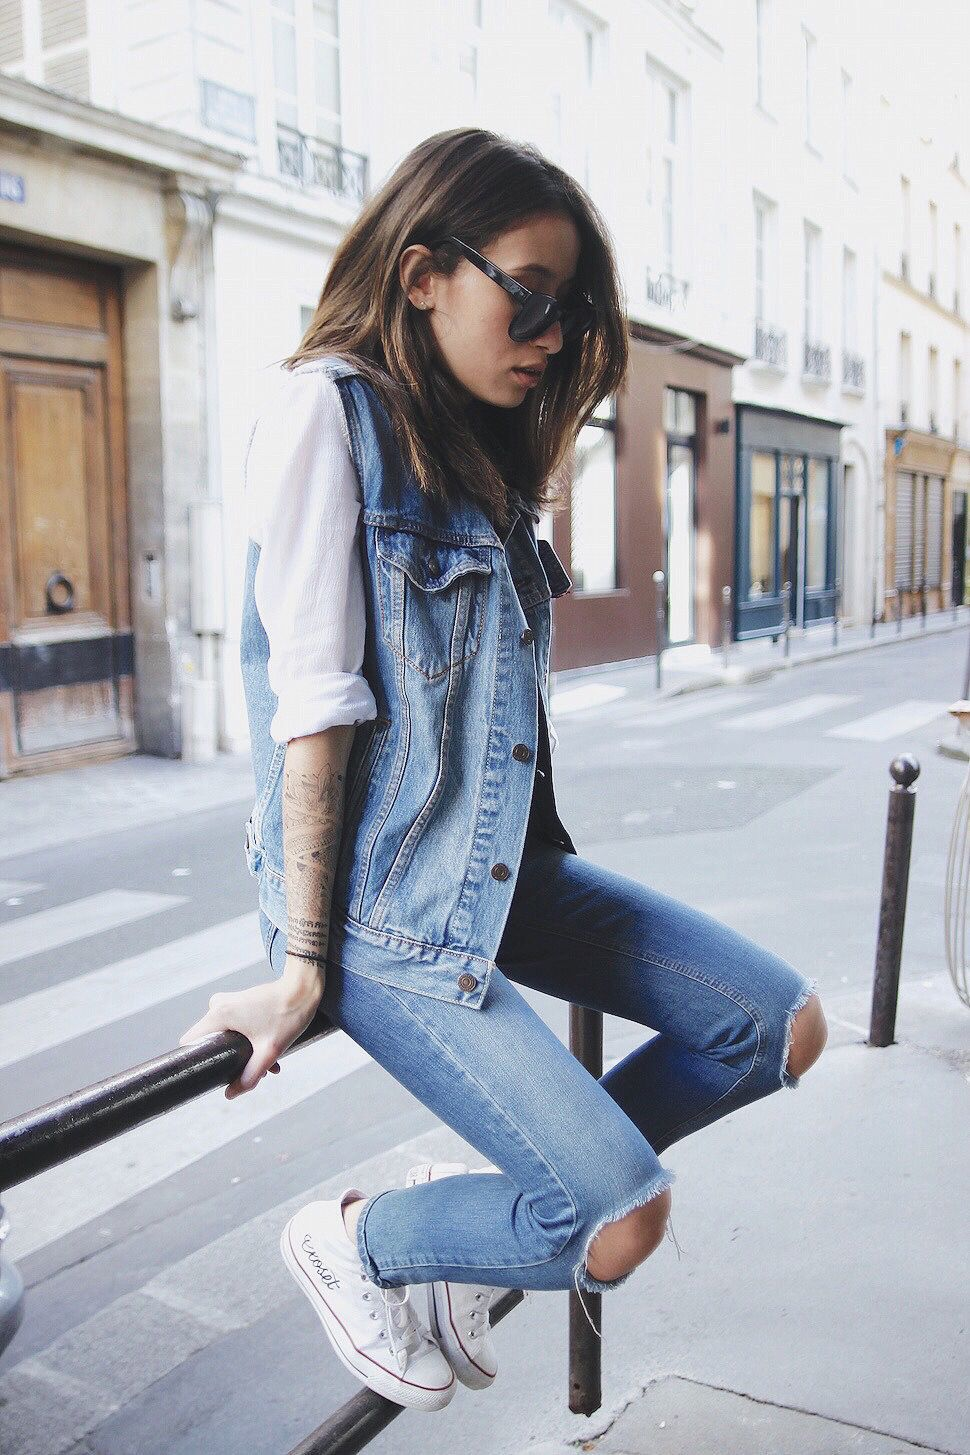 JEANS ON JEANS | Denim on denim, Style and Denim vests